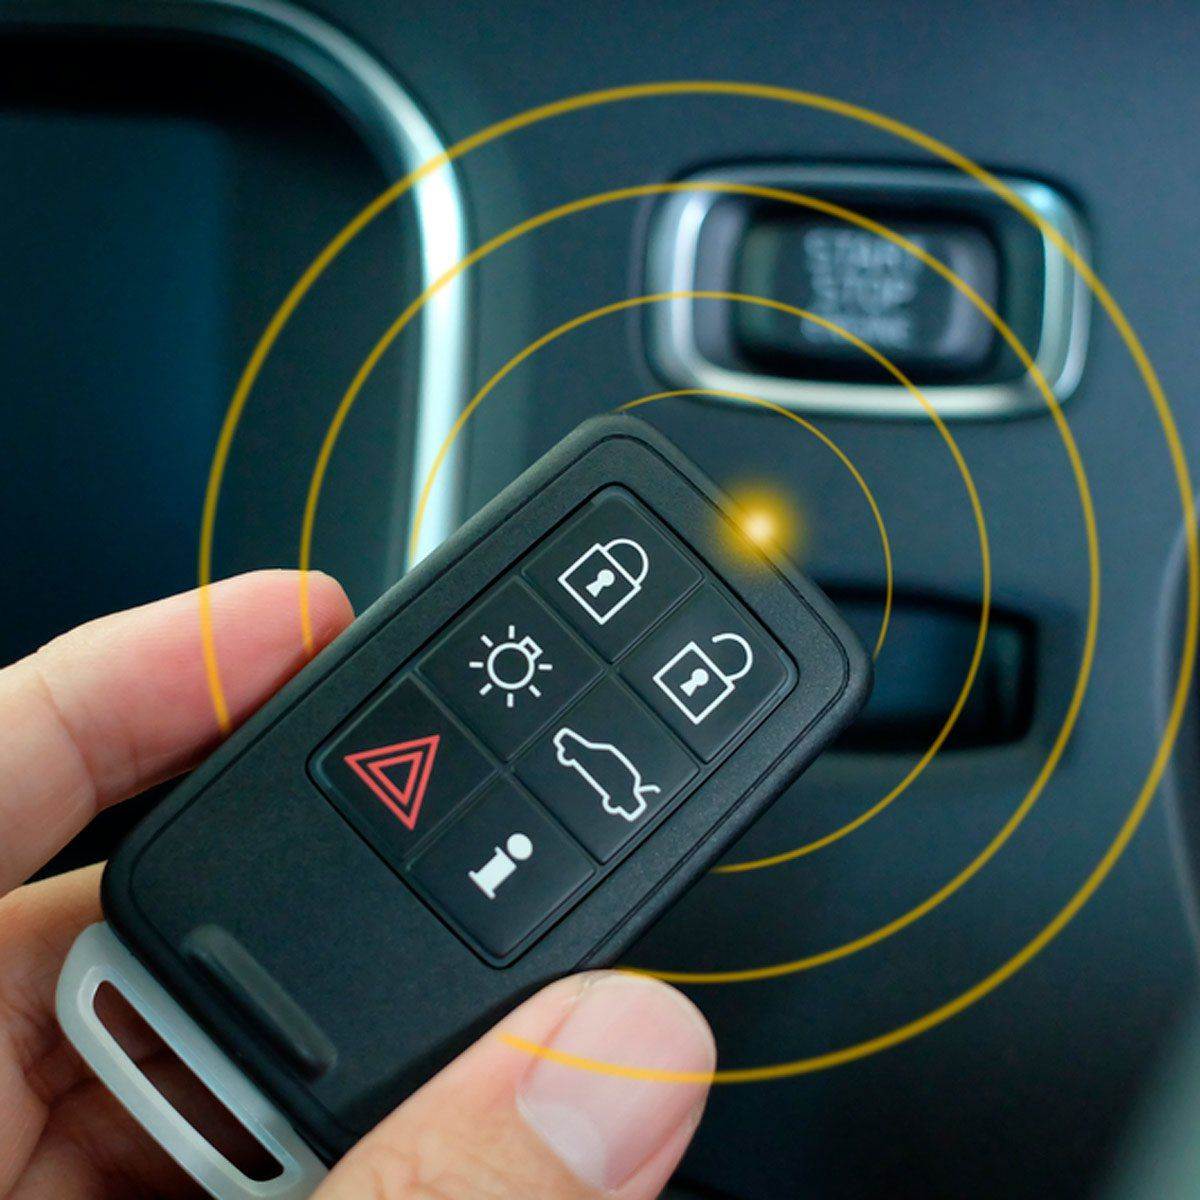 Why Keyless Entry Car Systems Are Getting Stolen More